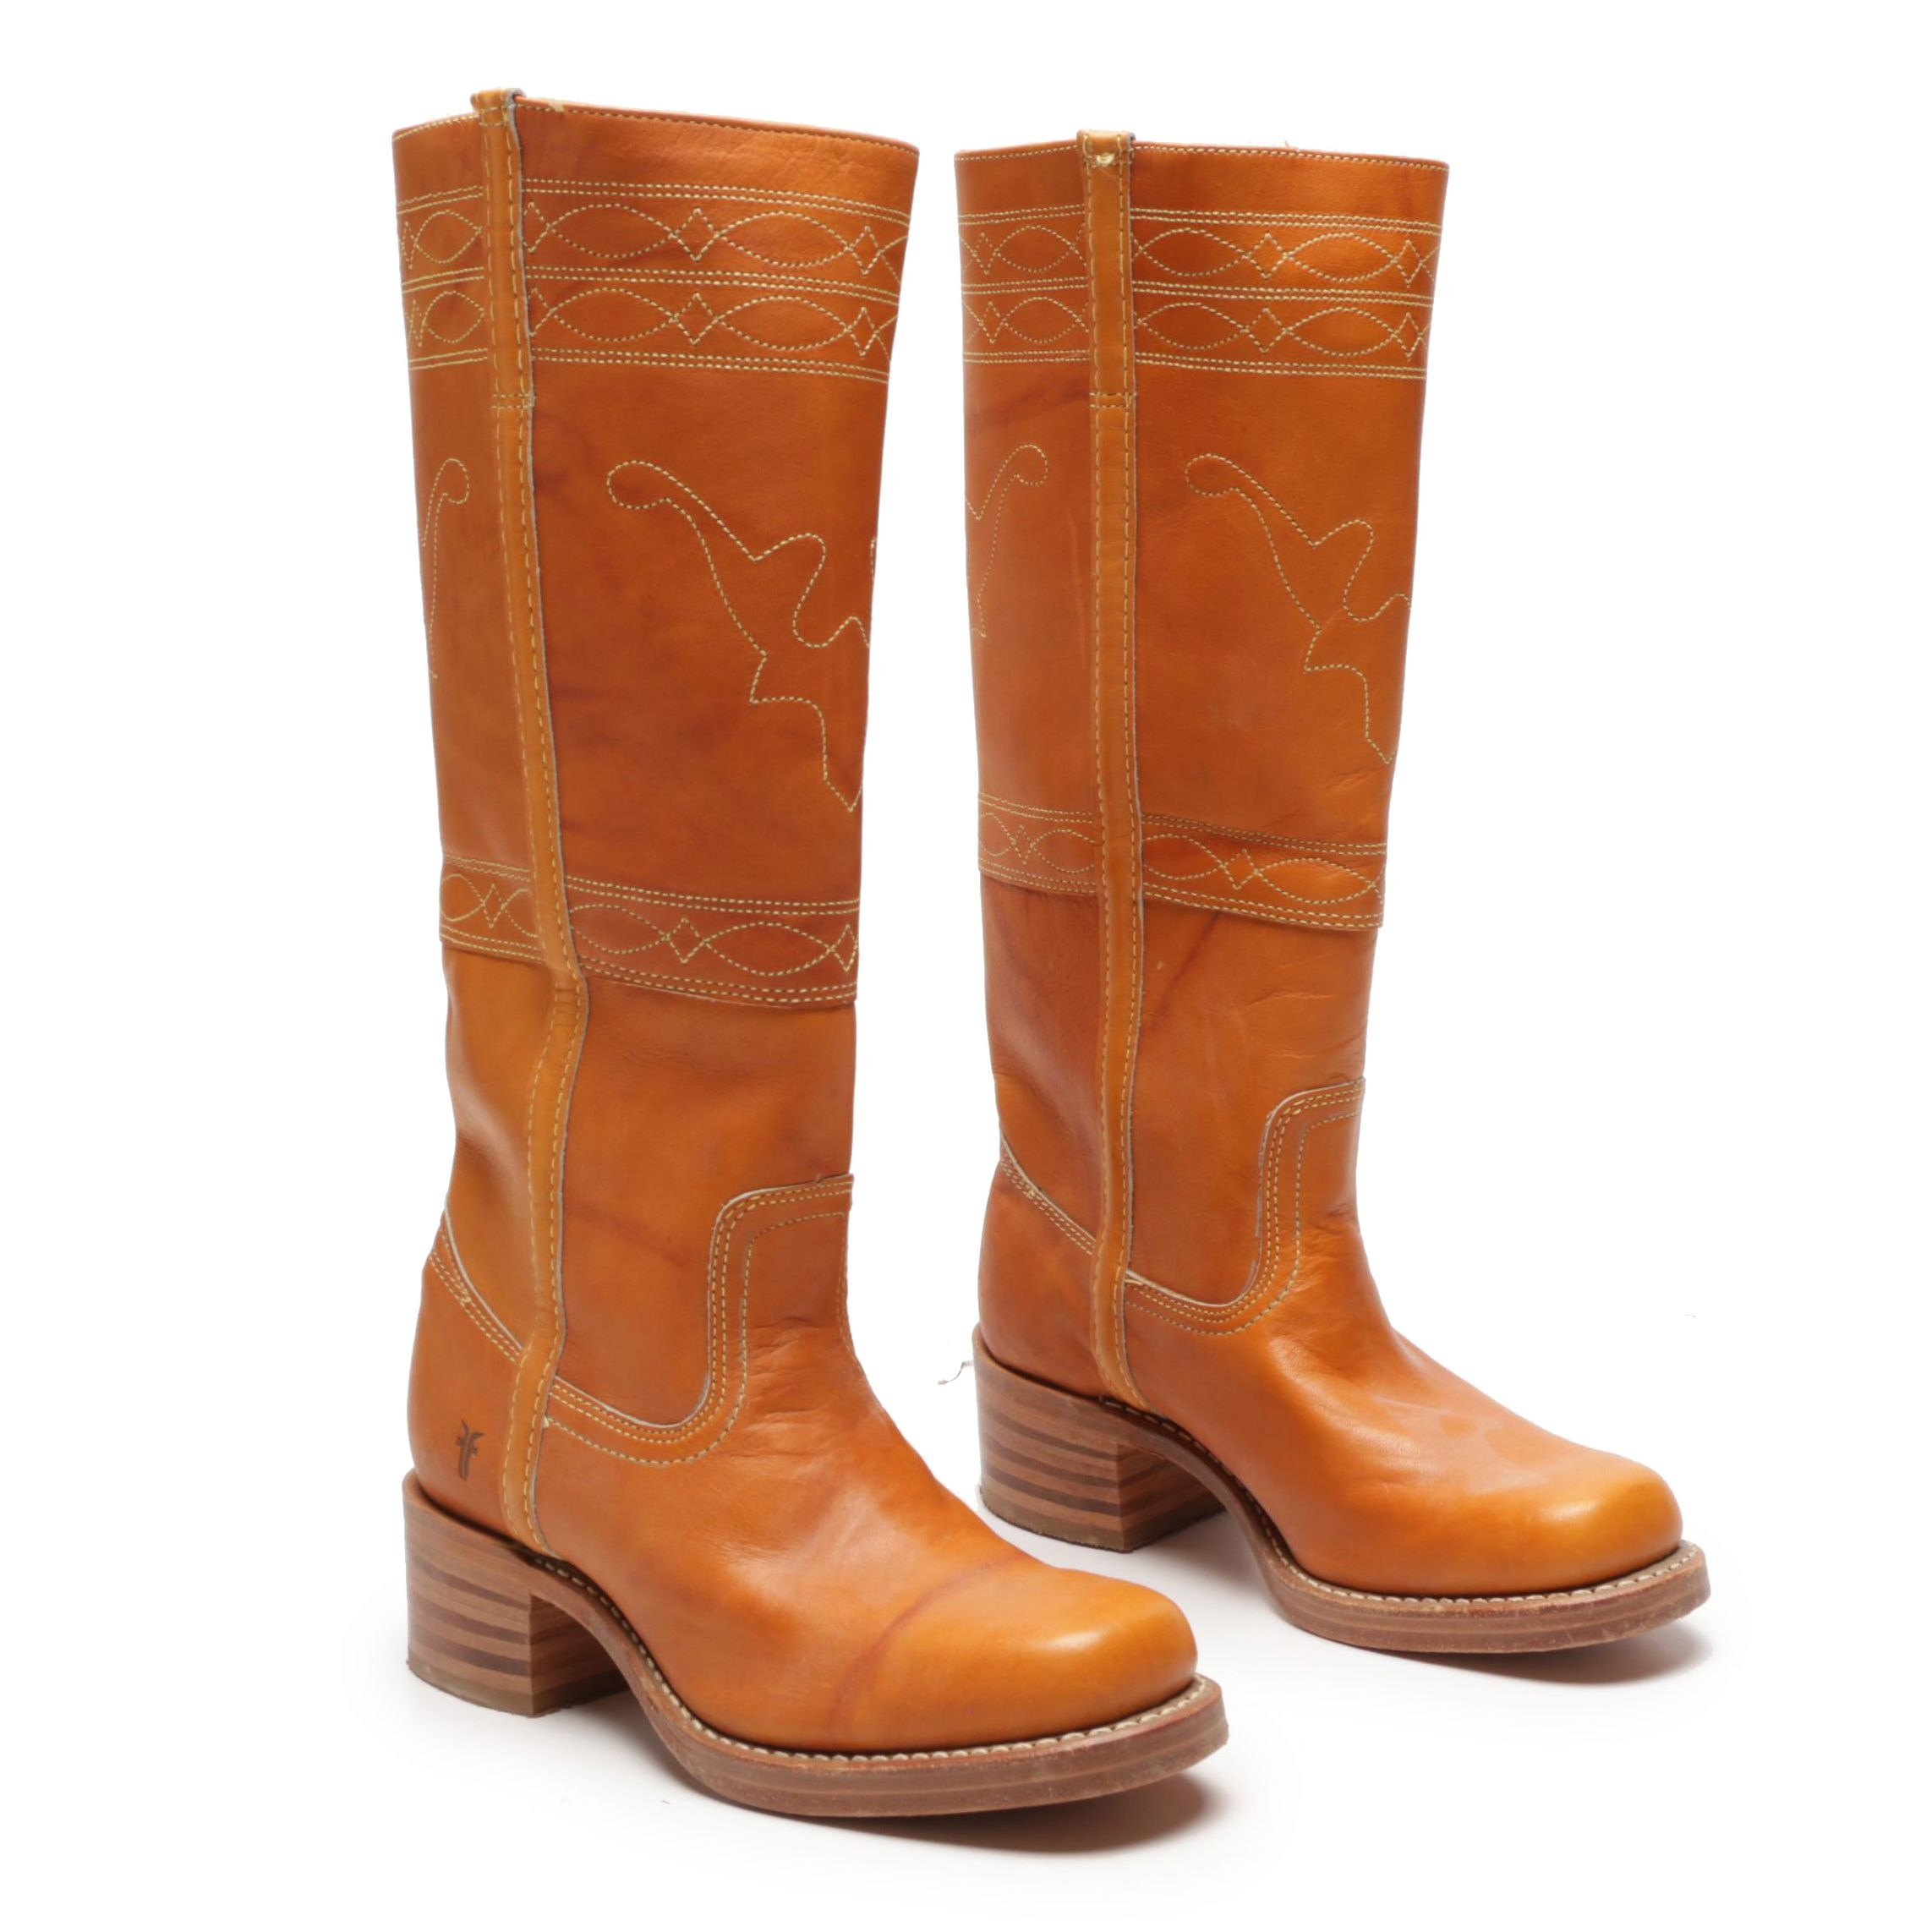 Women's Frye Tan Leather Tall Boots